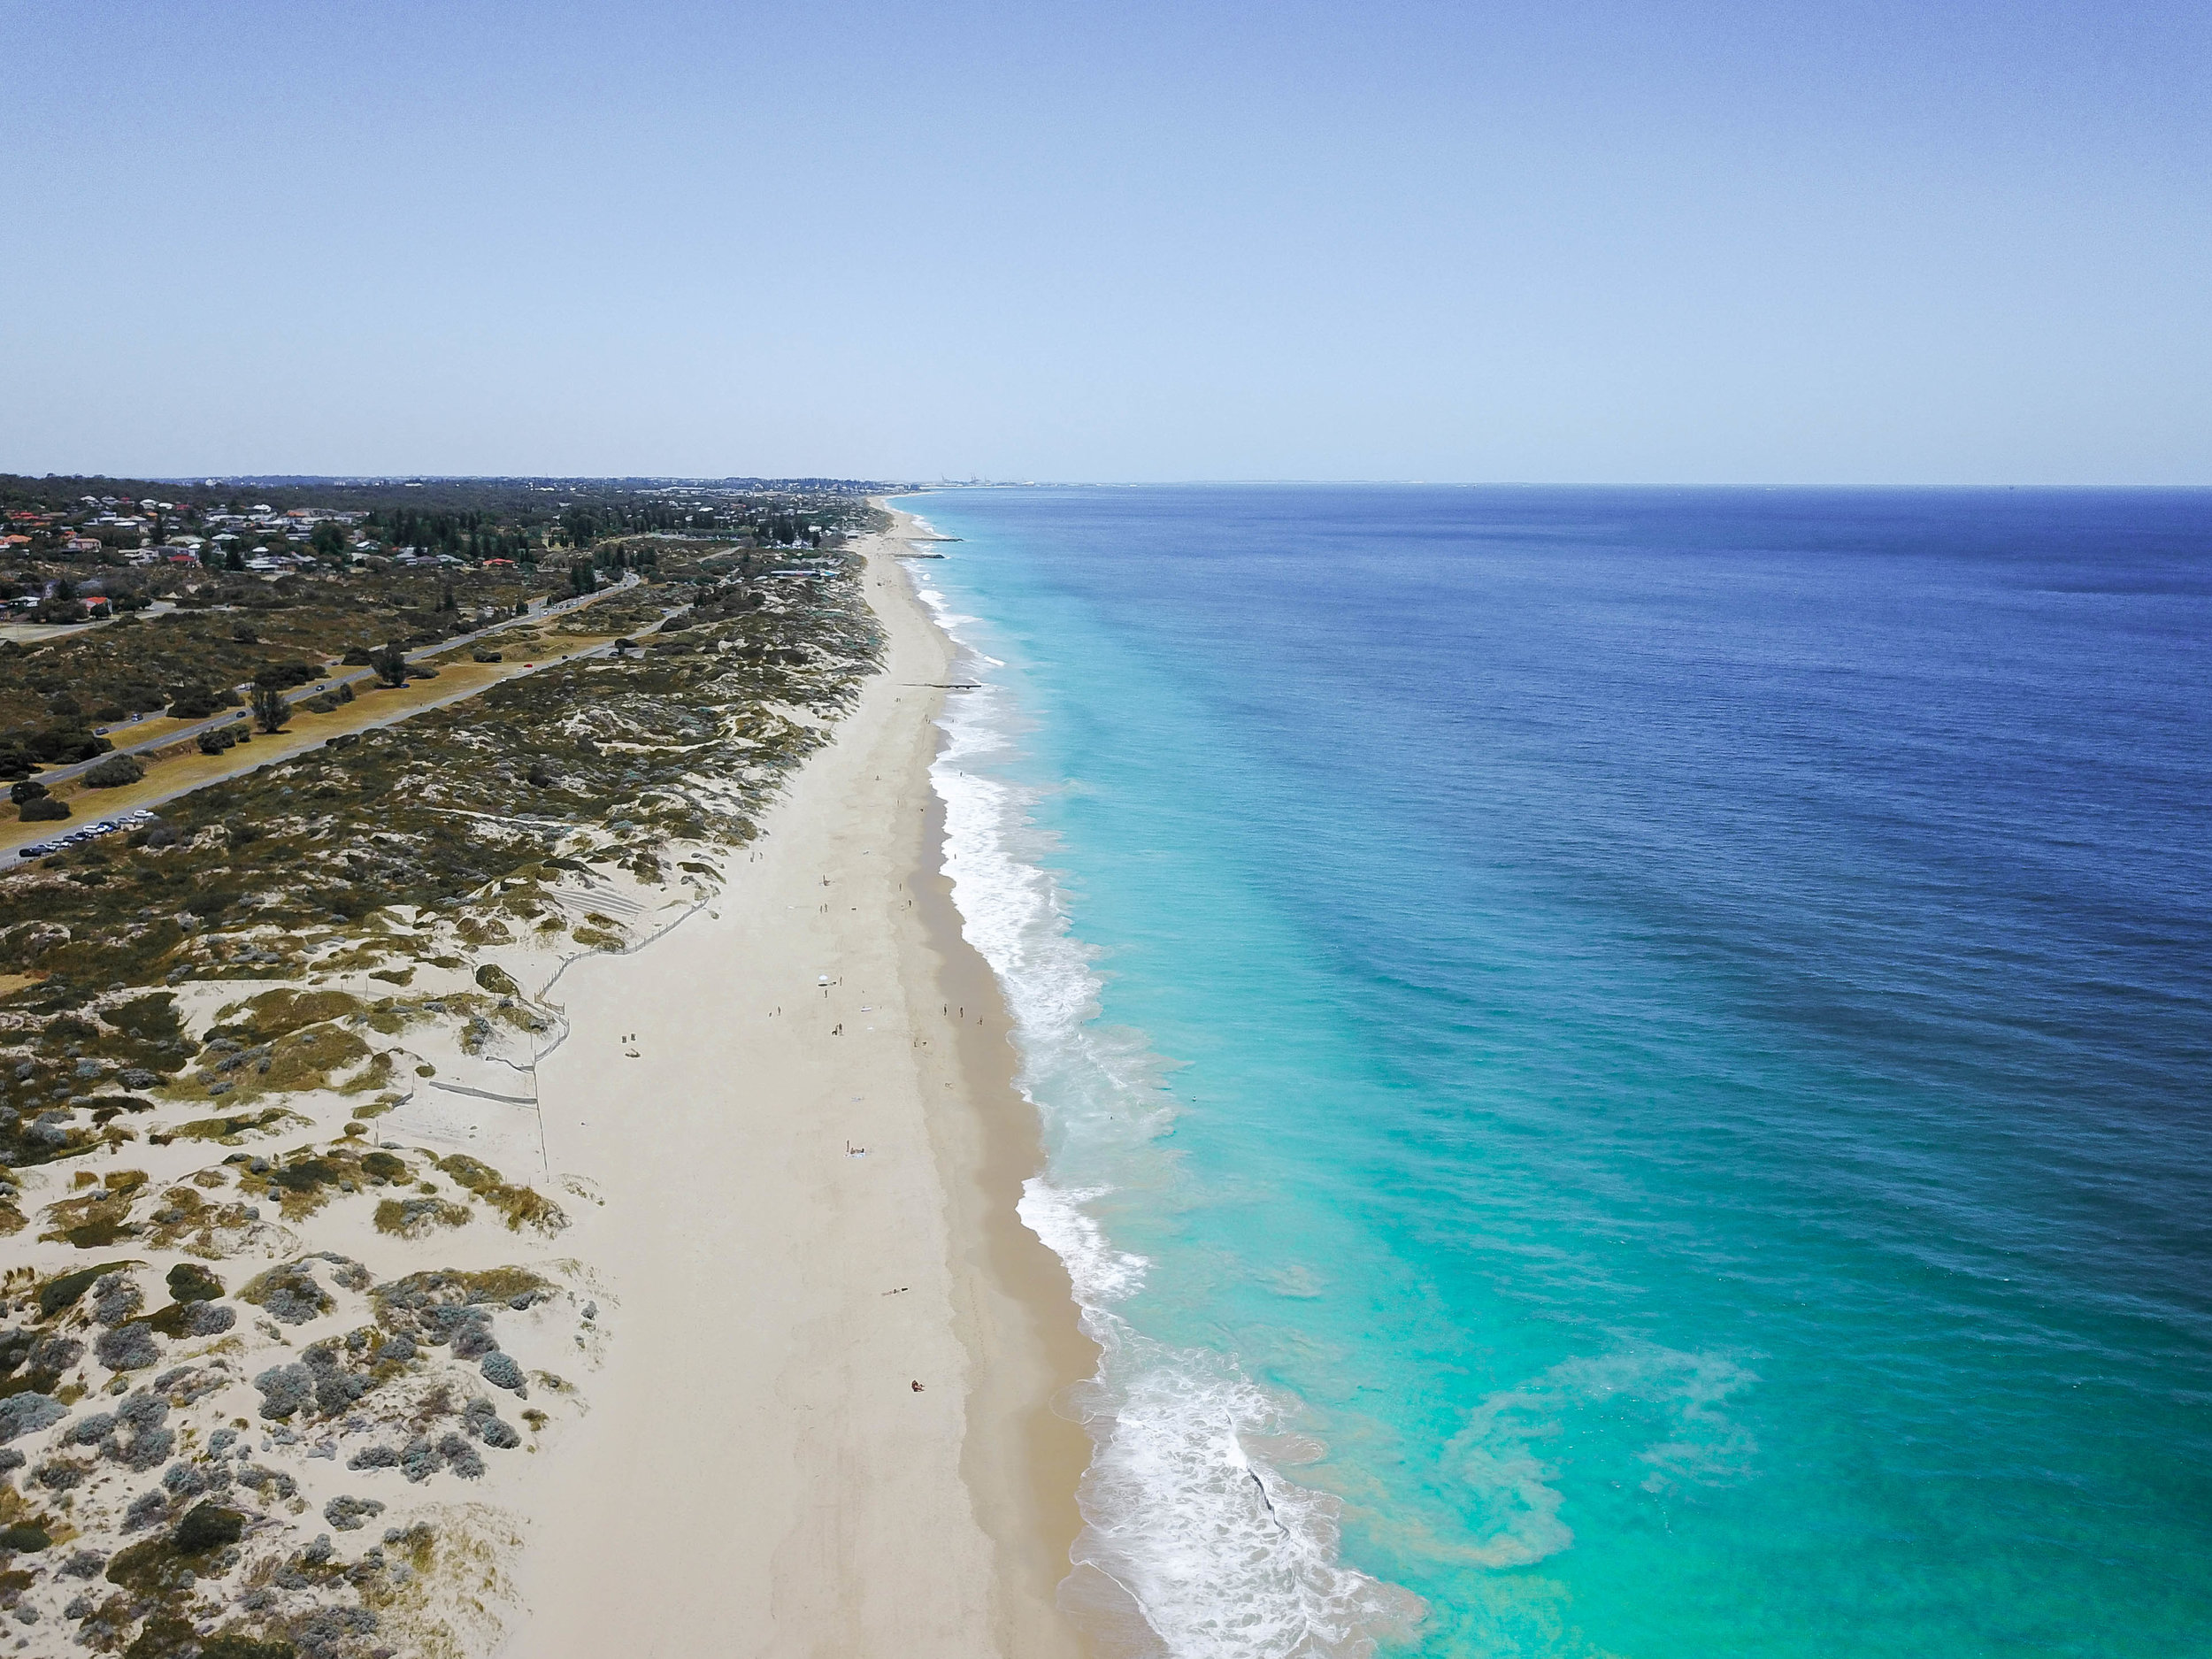 Perth-Floreat Beach